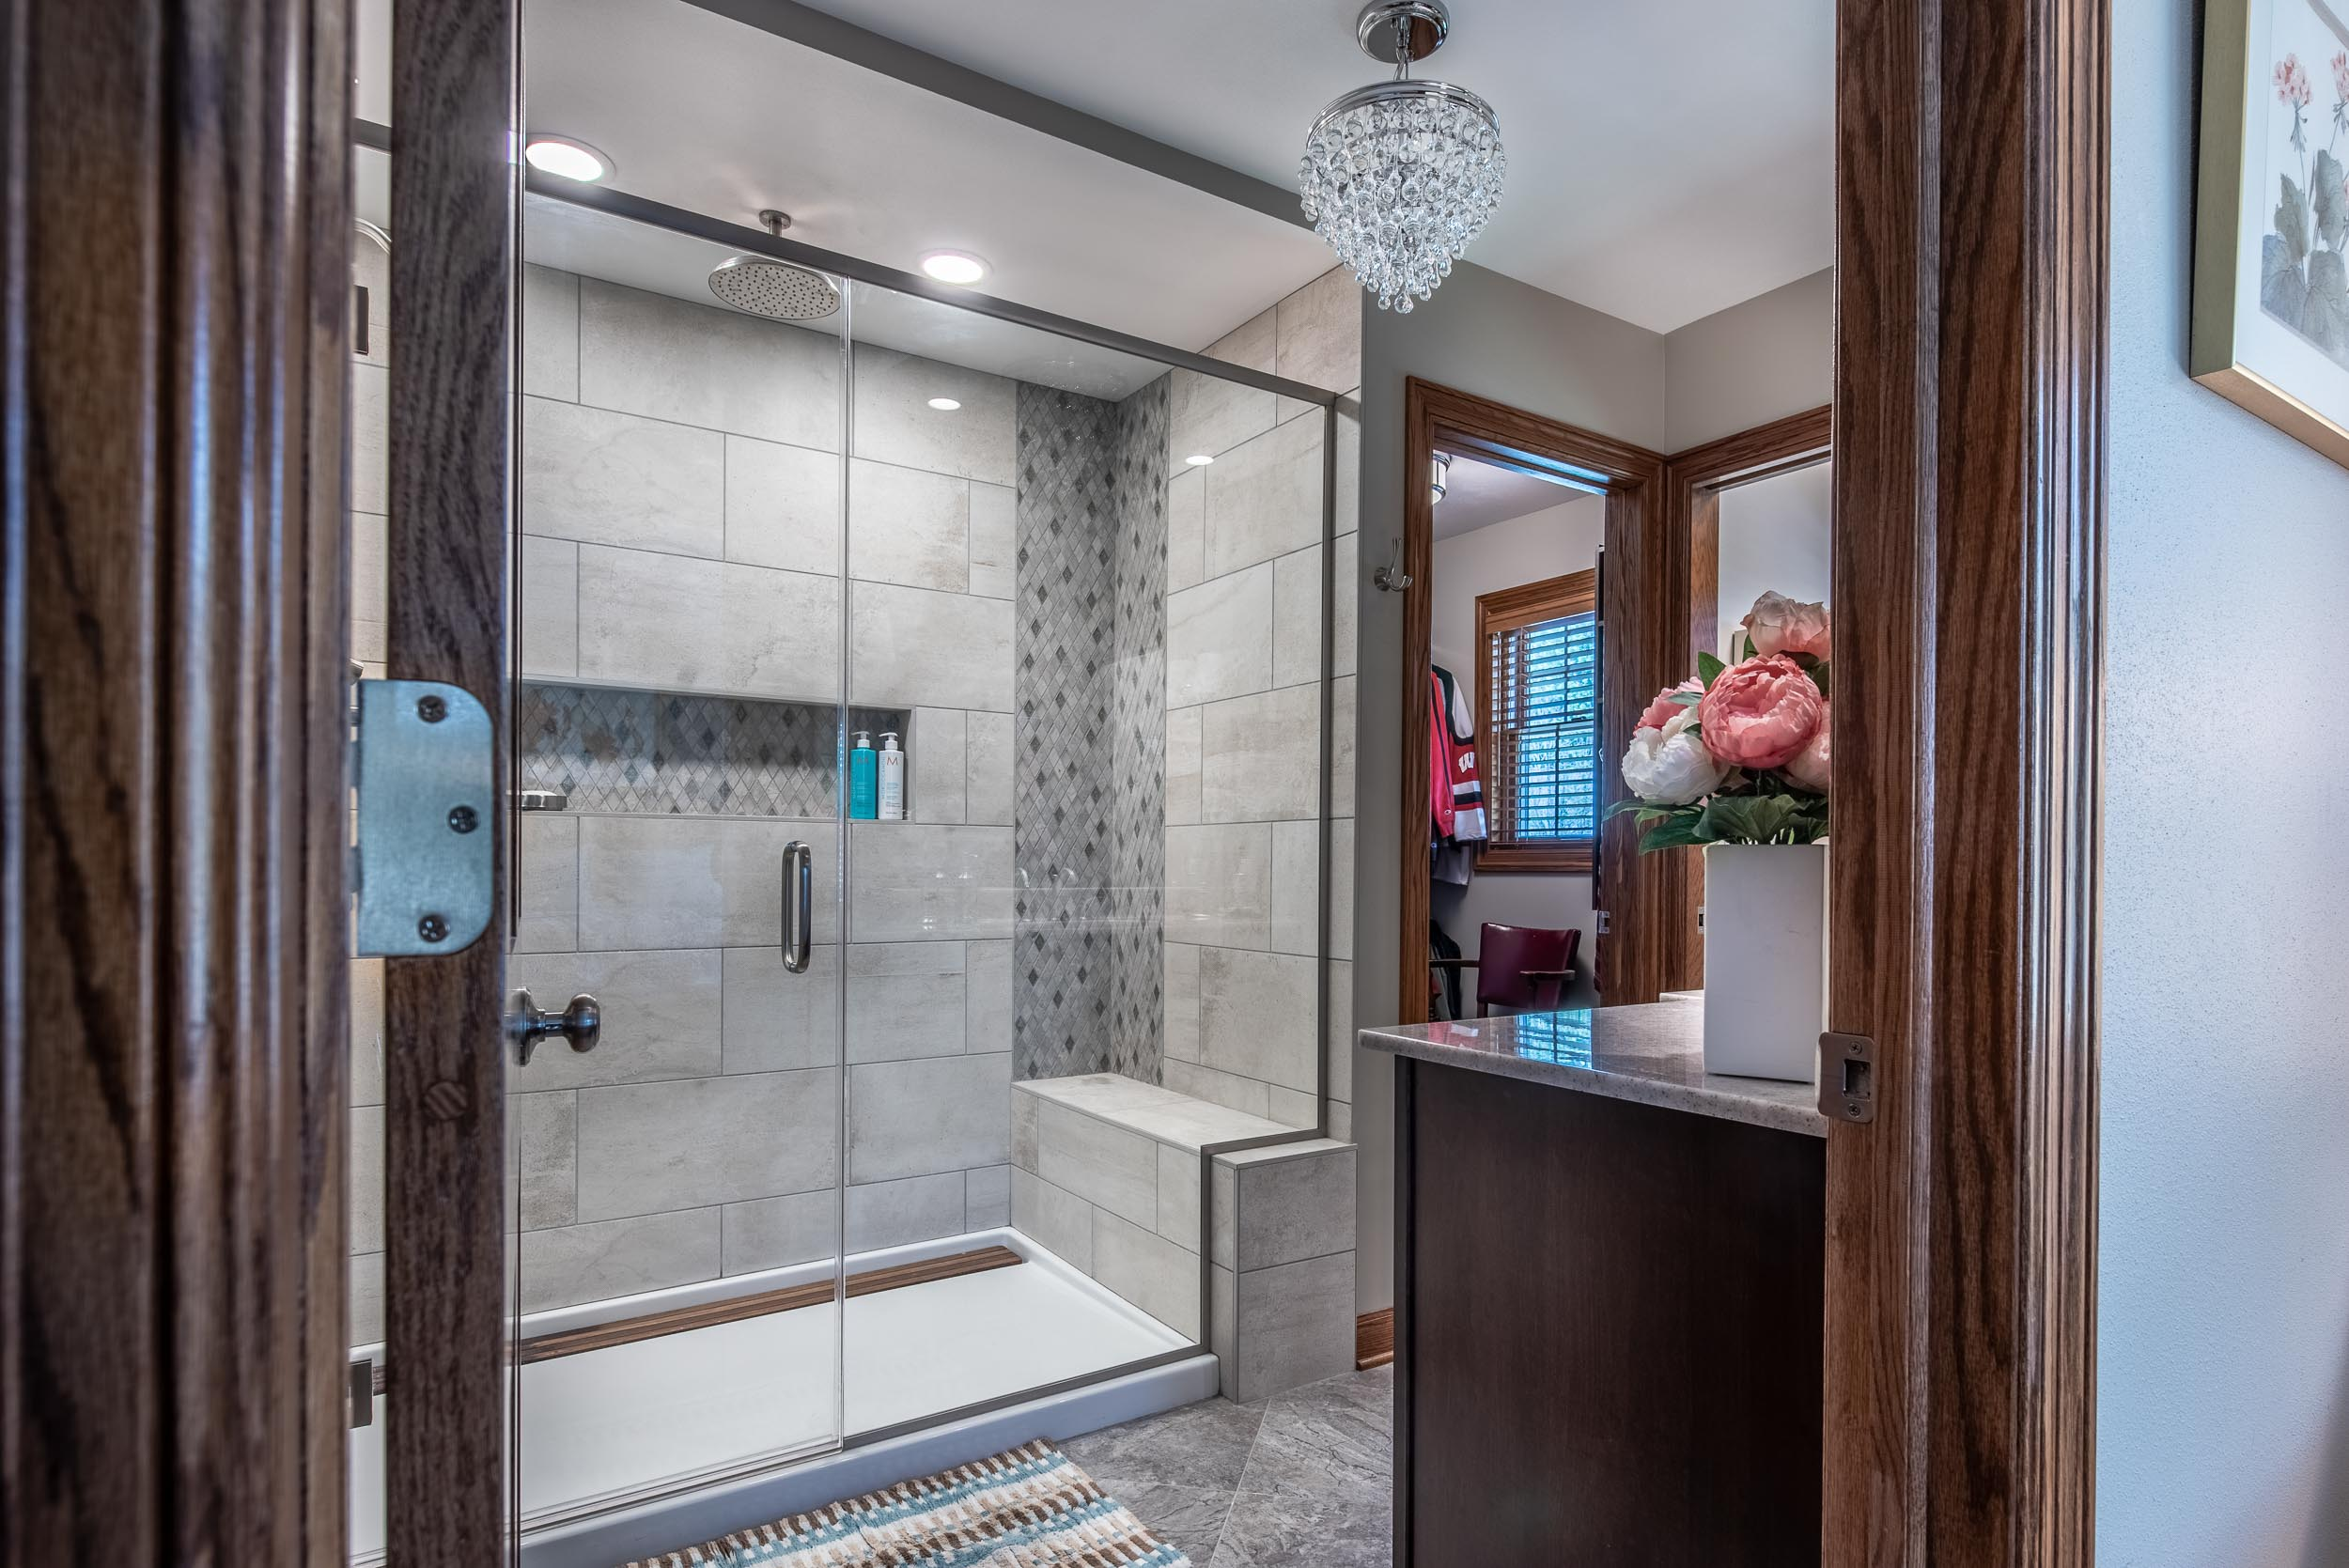 Master Bathroom Design With Walk-in Closet